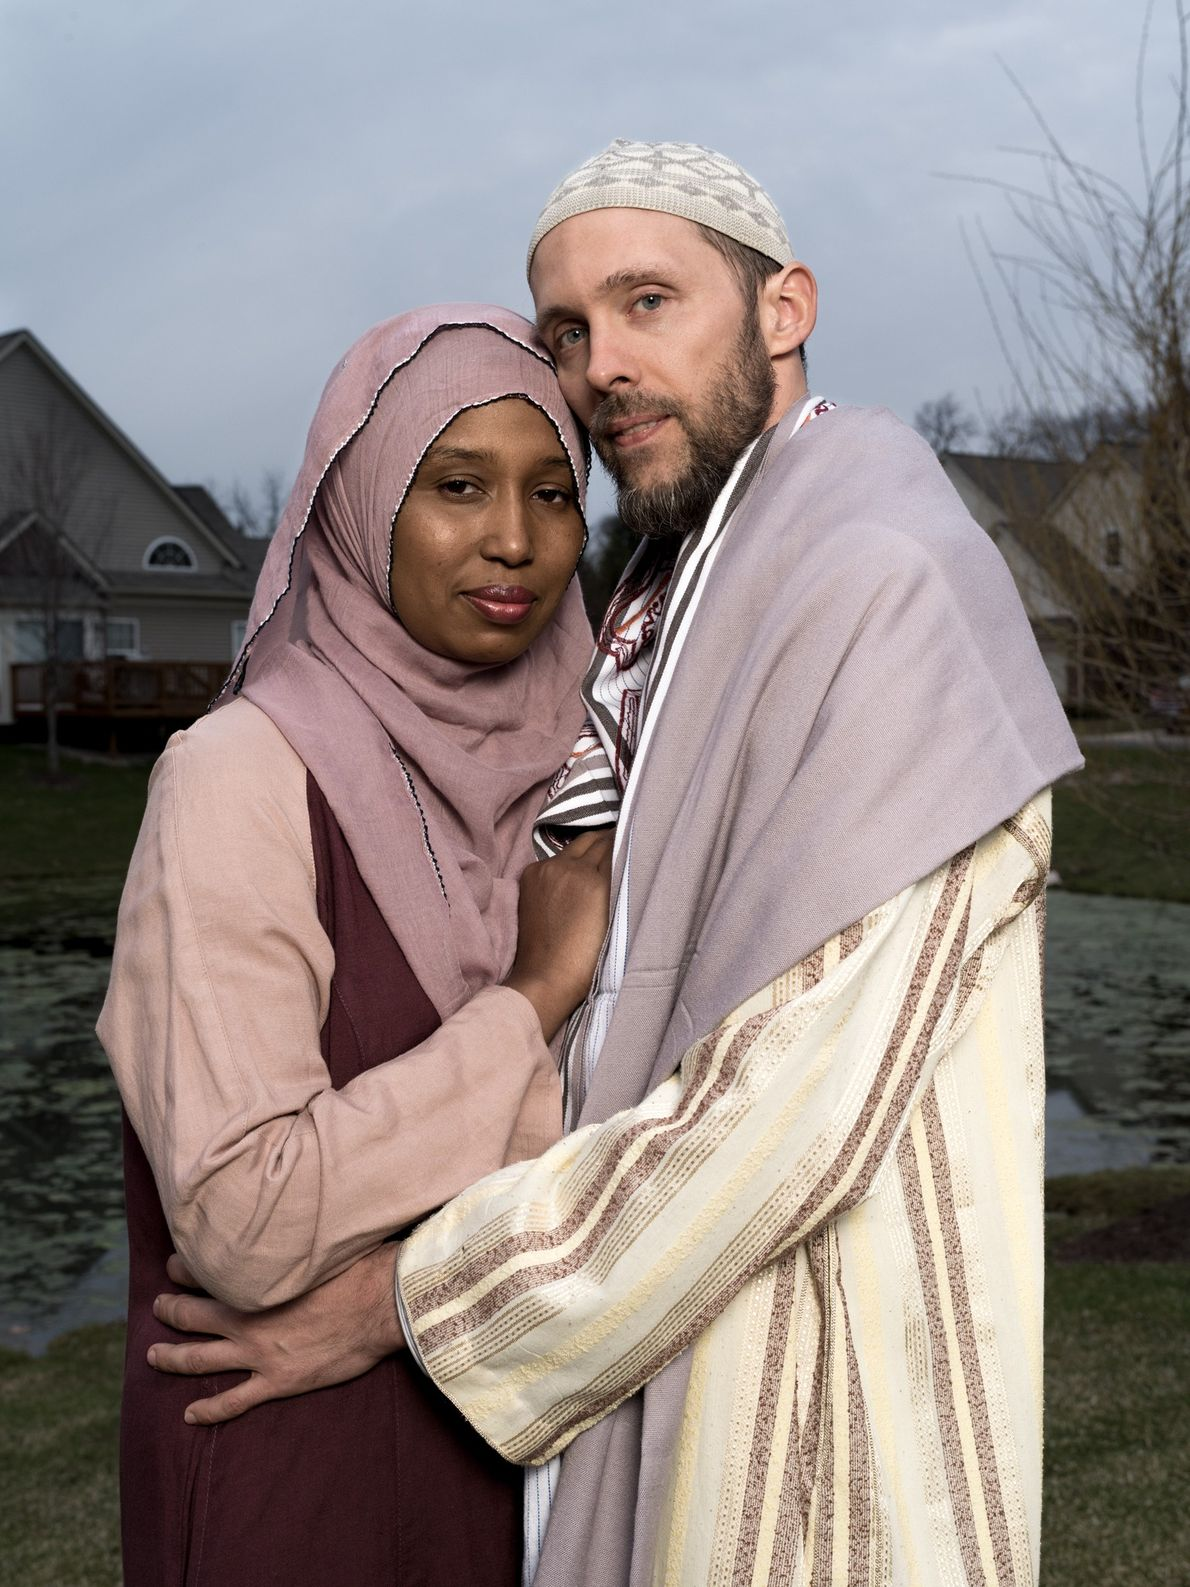 Kamilah Munirah Bolling and Adil Justin Cole stand outside their home in Farmington Hills, Michigan.